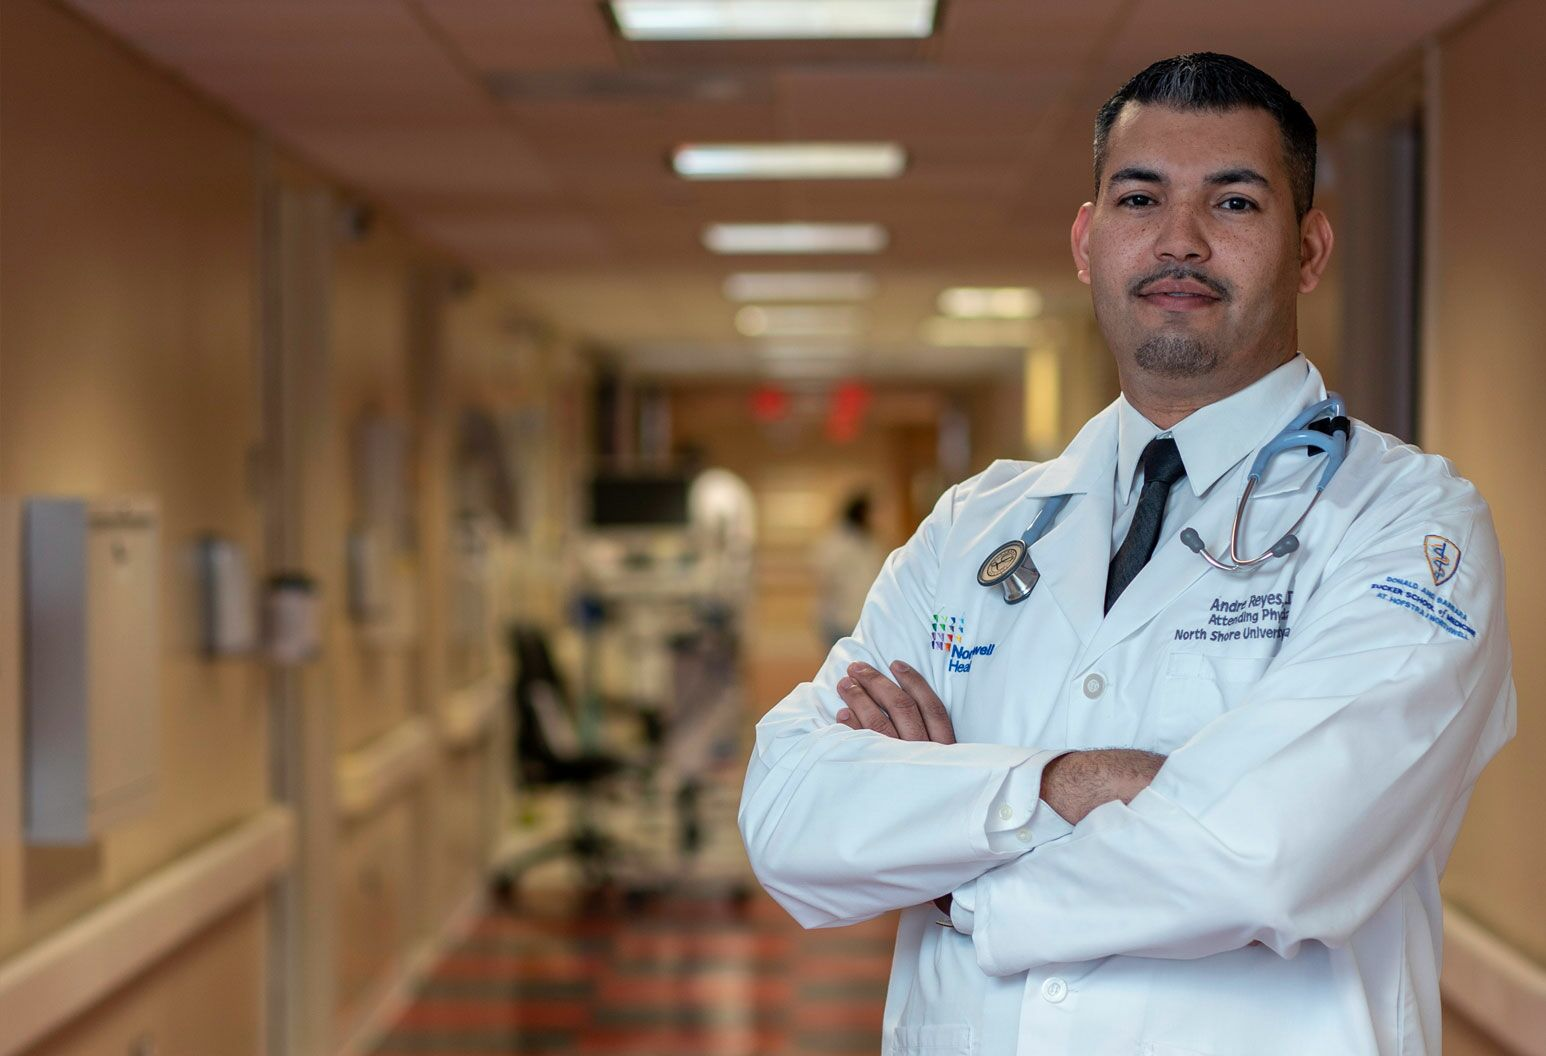 Physician of the year nominee